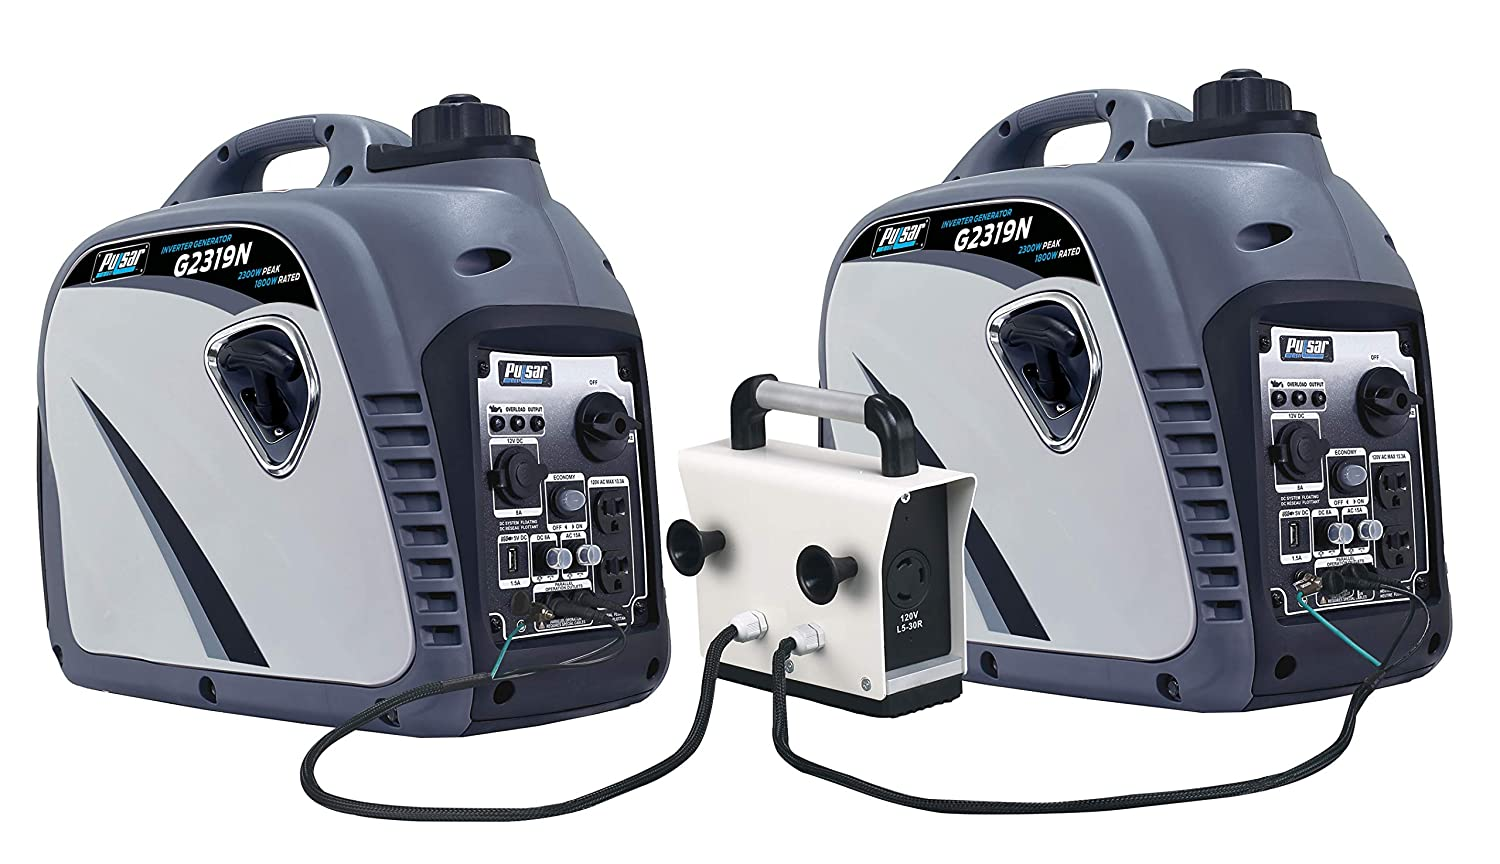 Pulsar PG2000iS portable inverter generators can be connected to each other